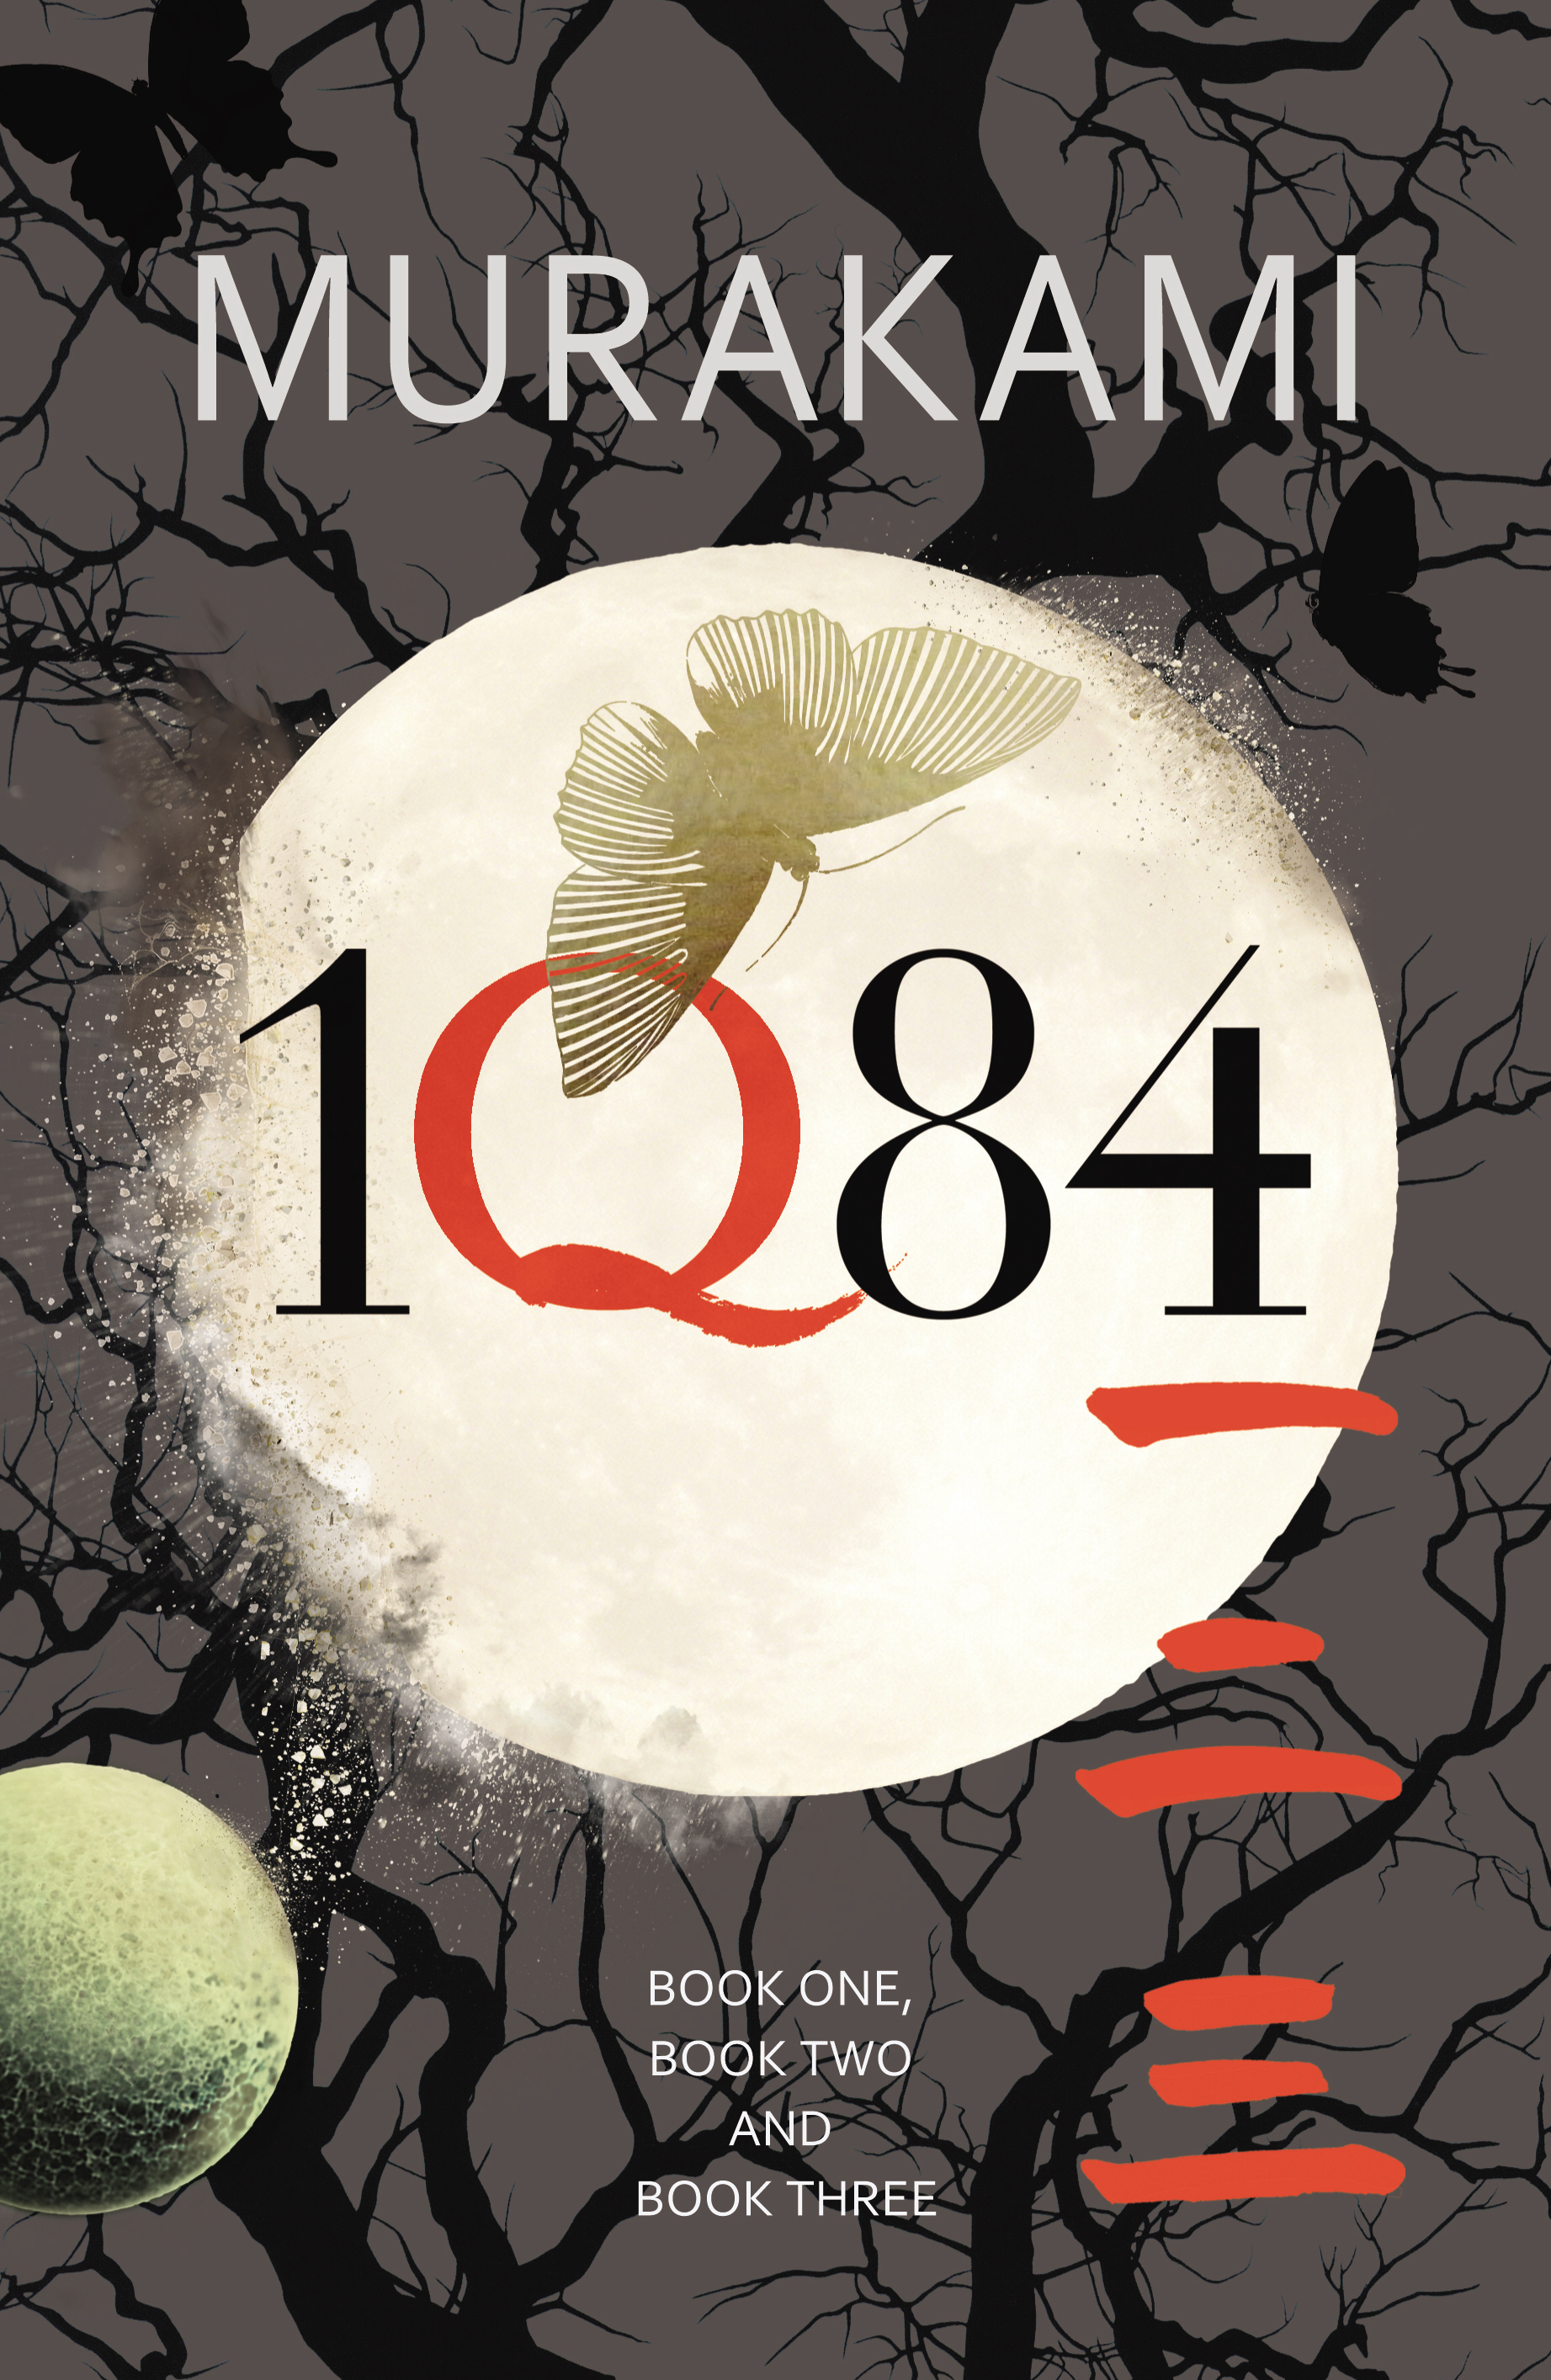 1Q84 techbizdesign hall of fame